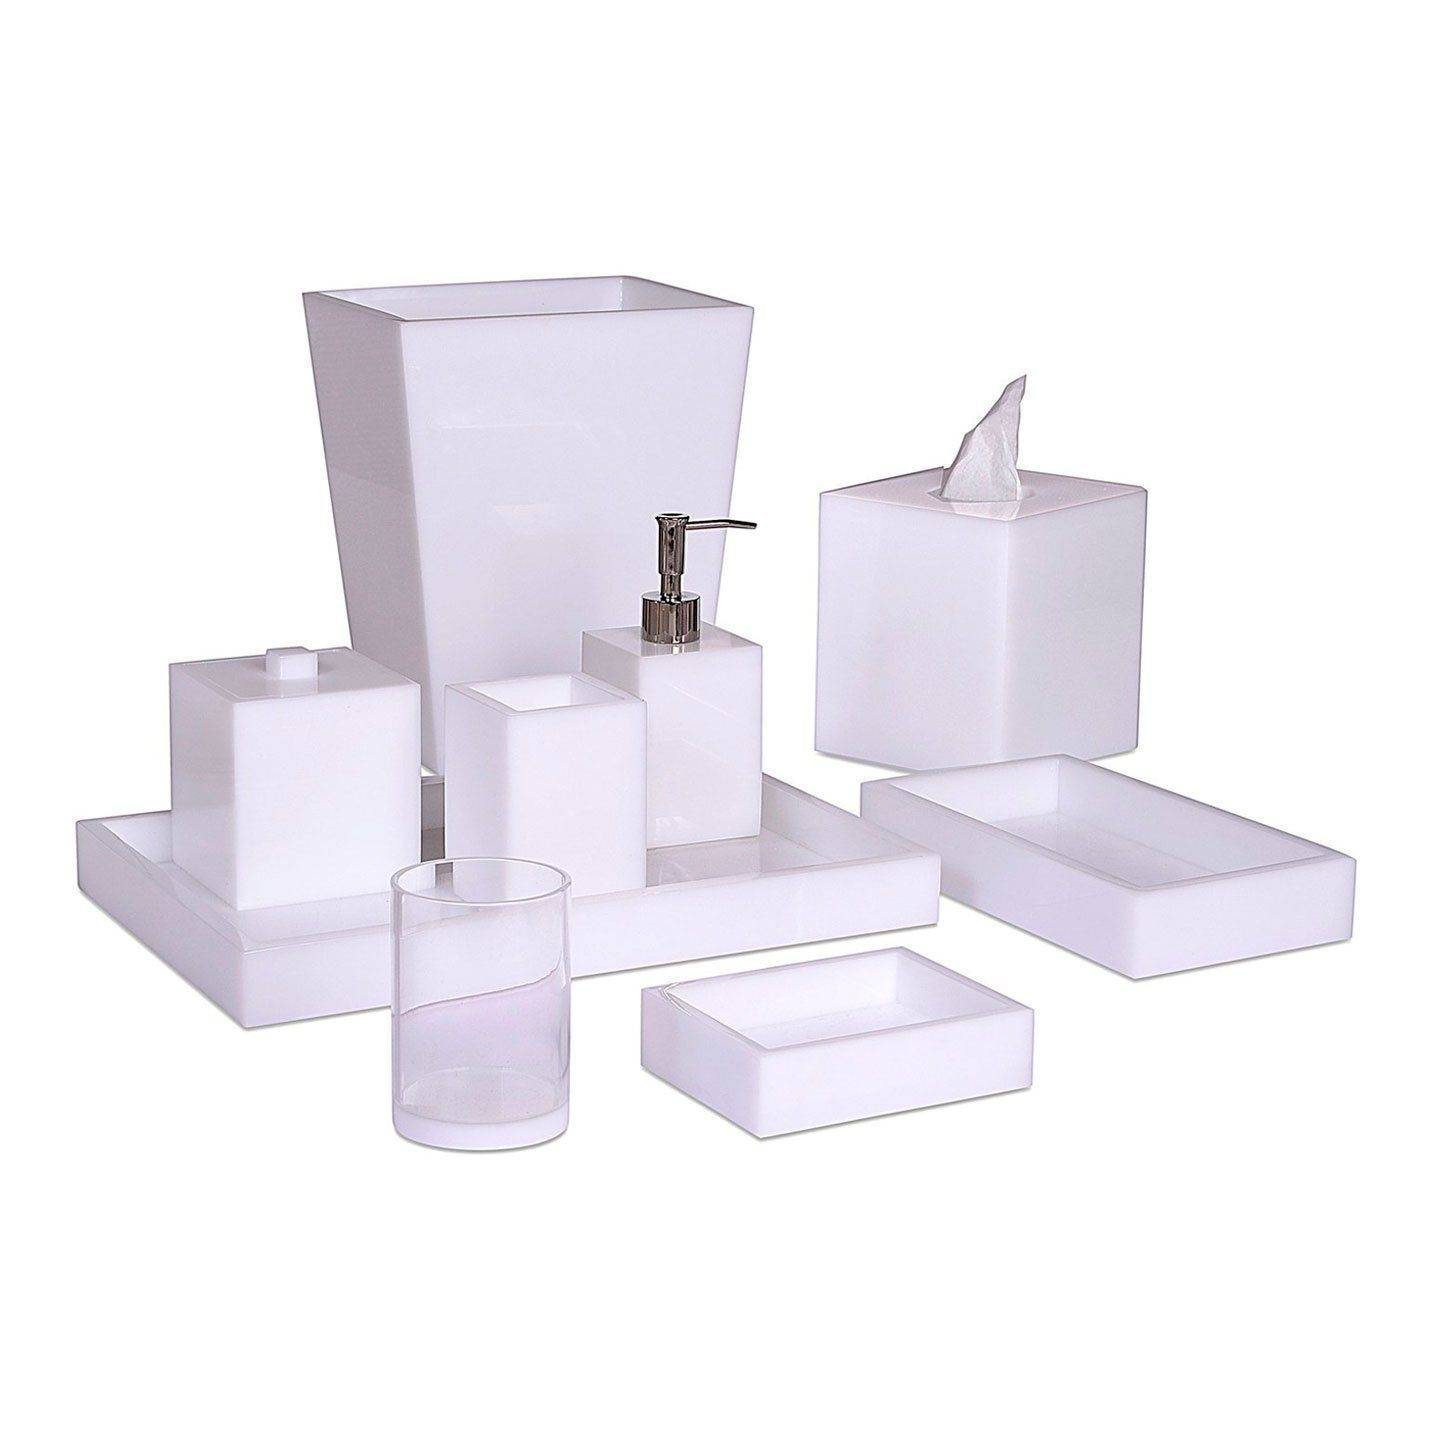 Mike + Ally Ice White Lucite Bath Accessories by Mike + Ally